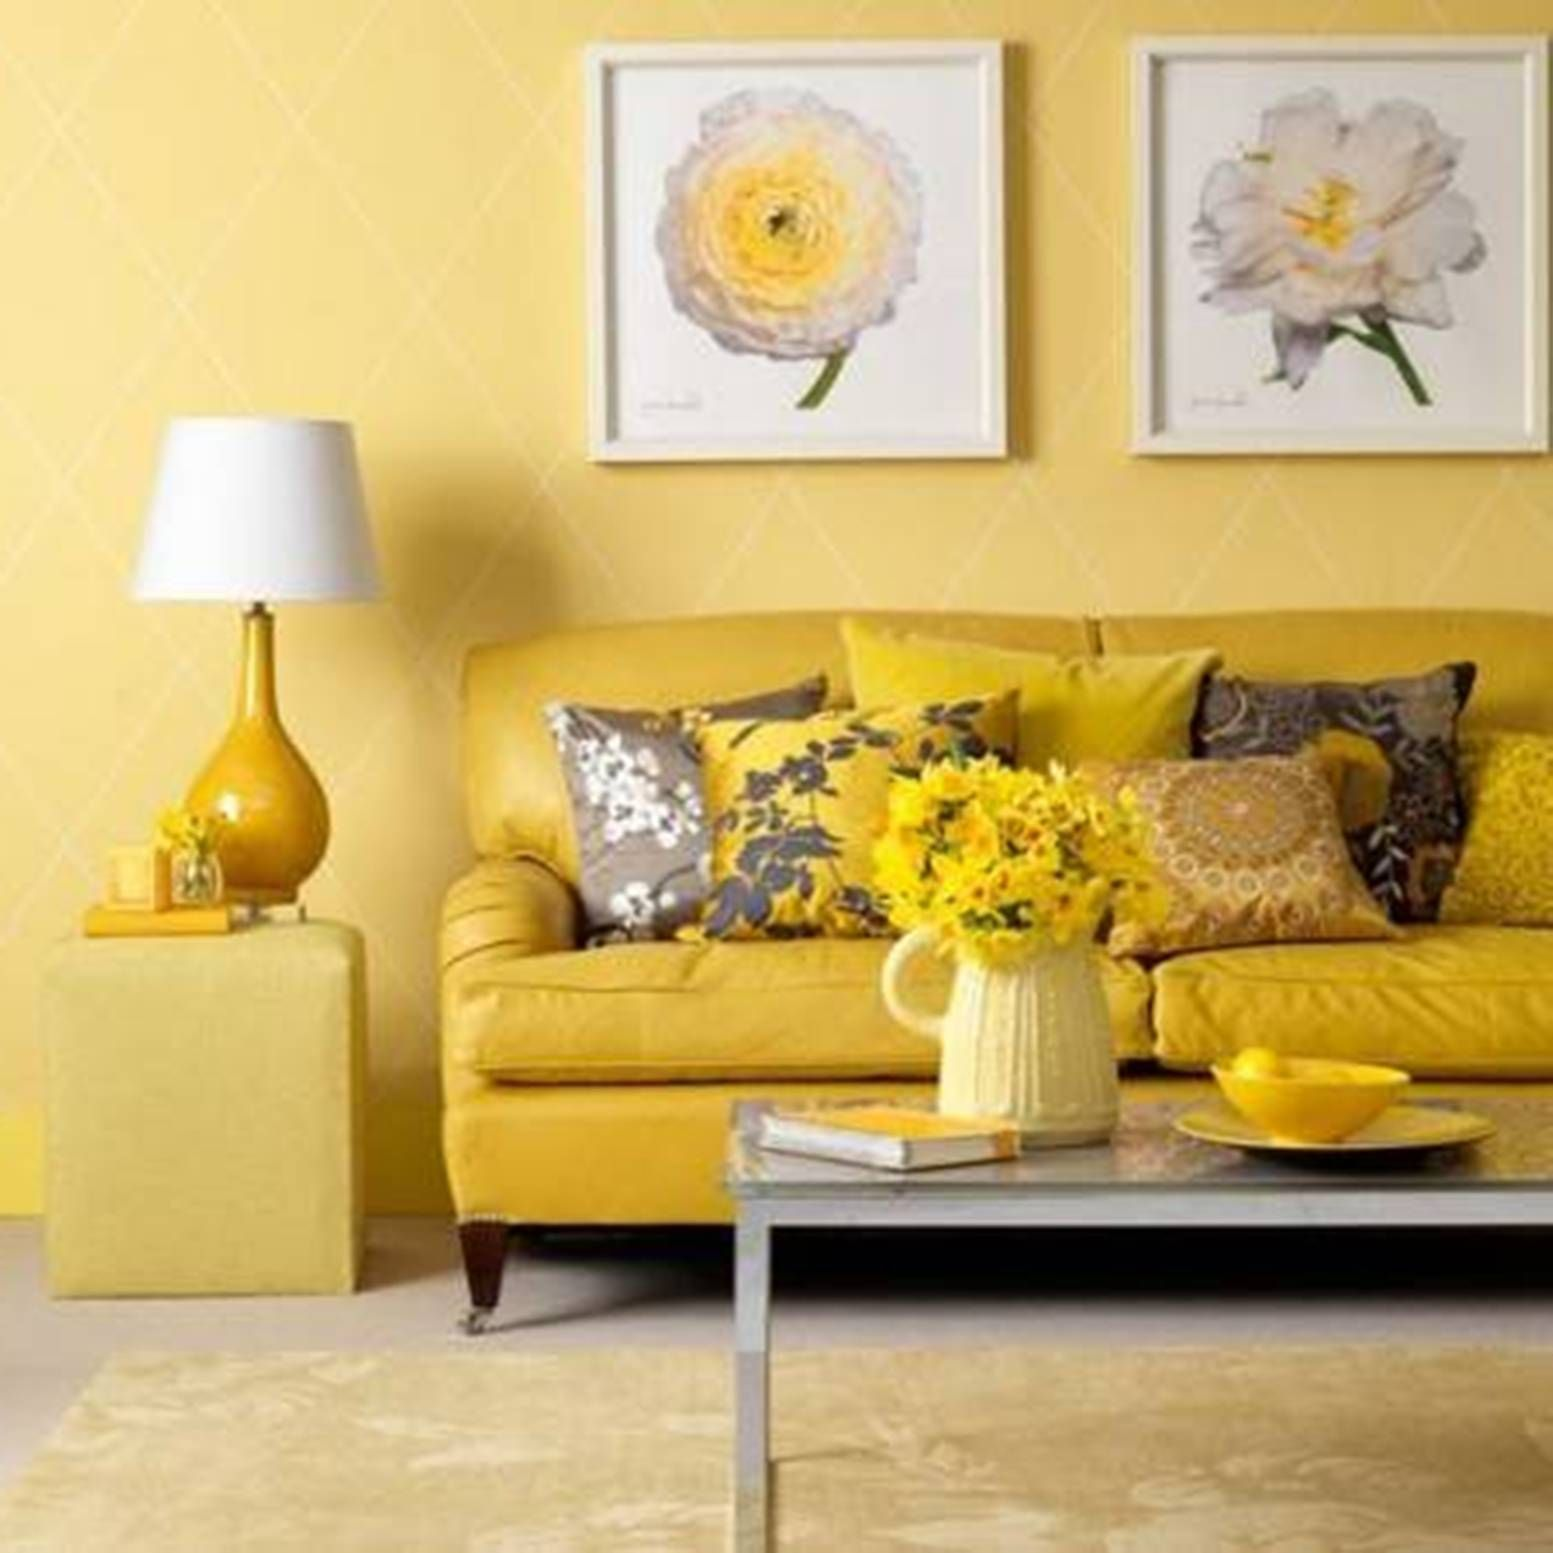 Yellow Bedroom Paint pink, green and orange decor |  decor ideas in yellow and